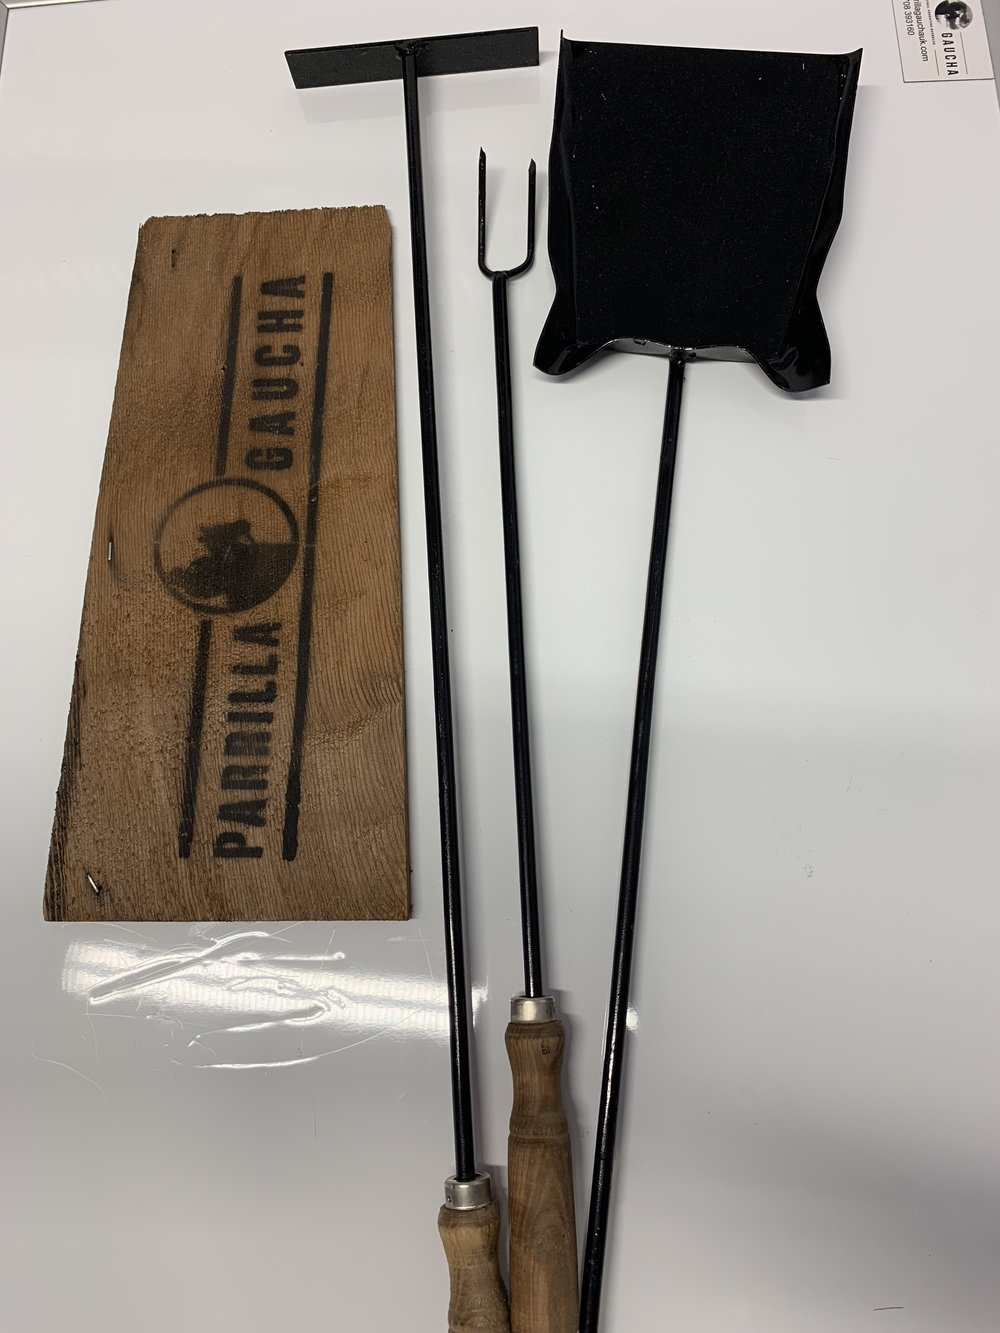 3 Piece Long Handled Asado set £39.95 - The most essential tools for any BBQ chef is the shovel, Poker and cooking fork. Hand made in Argentina these extra long handled fire cooking tools mean that you can control and move the hot embers and turn your meat without getting burnt Knuckels!!!!!Hand crafted from mild steal with wooden handles.78 cm Long